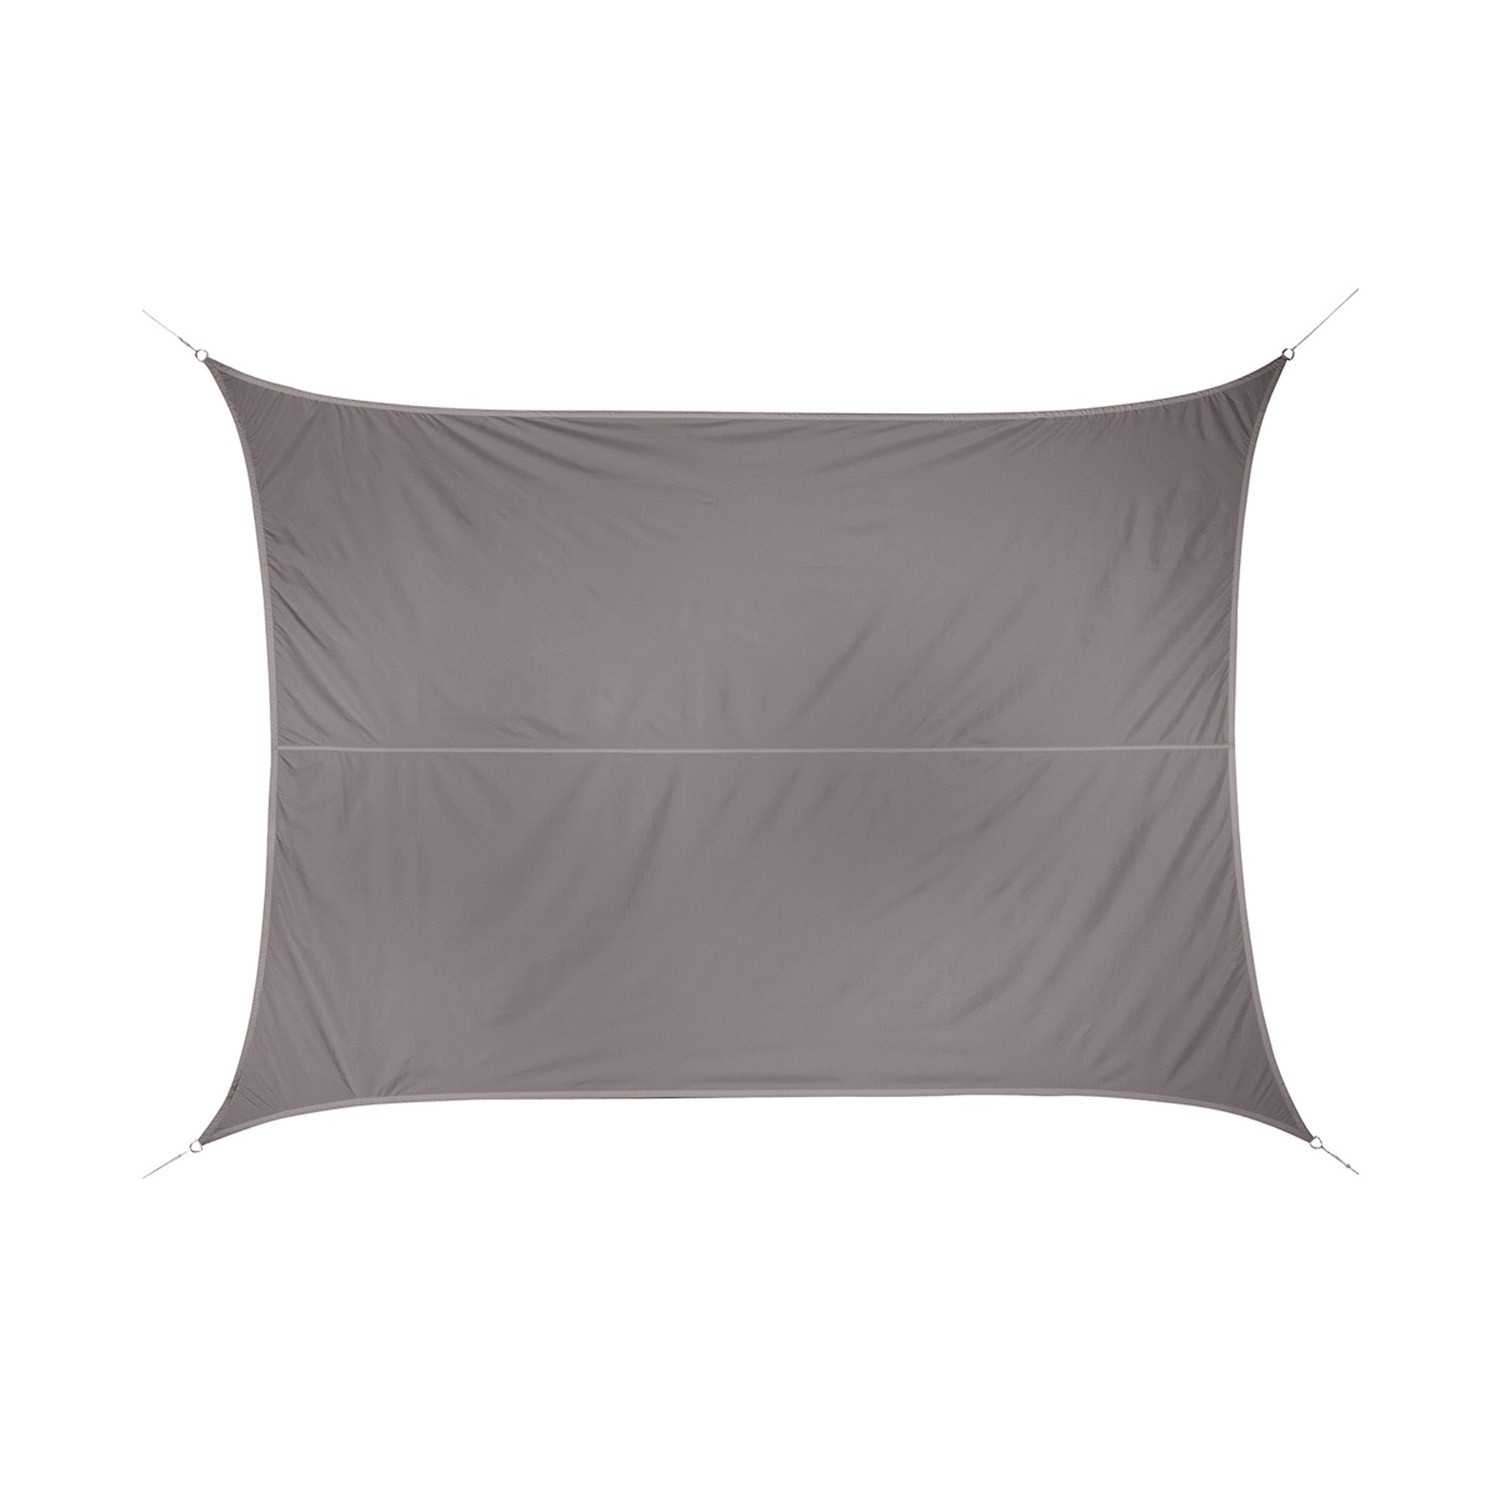 Voile D Ombrage 6 X 4 toile solaire / voile d'ombrage anori - 3 x 4 m - taupe